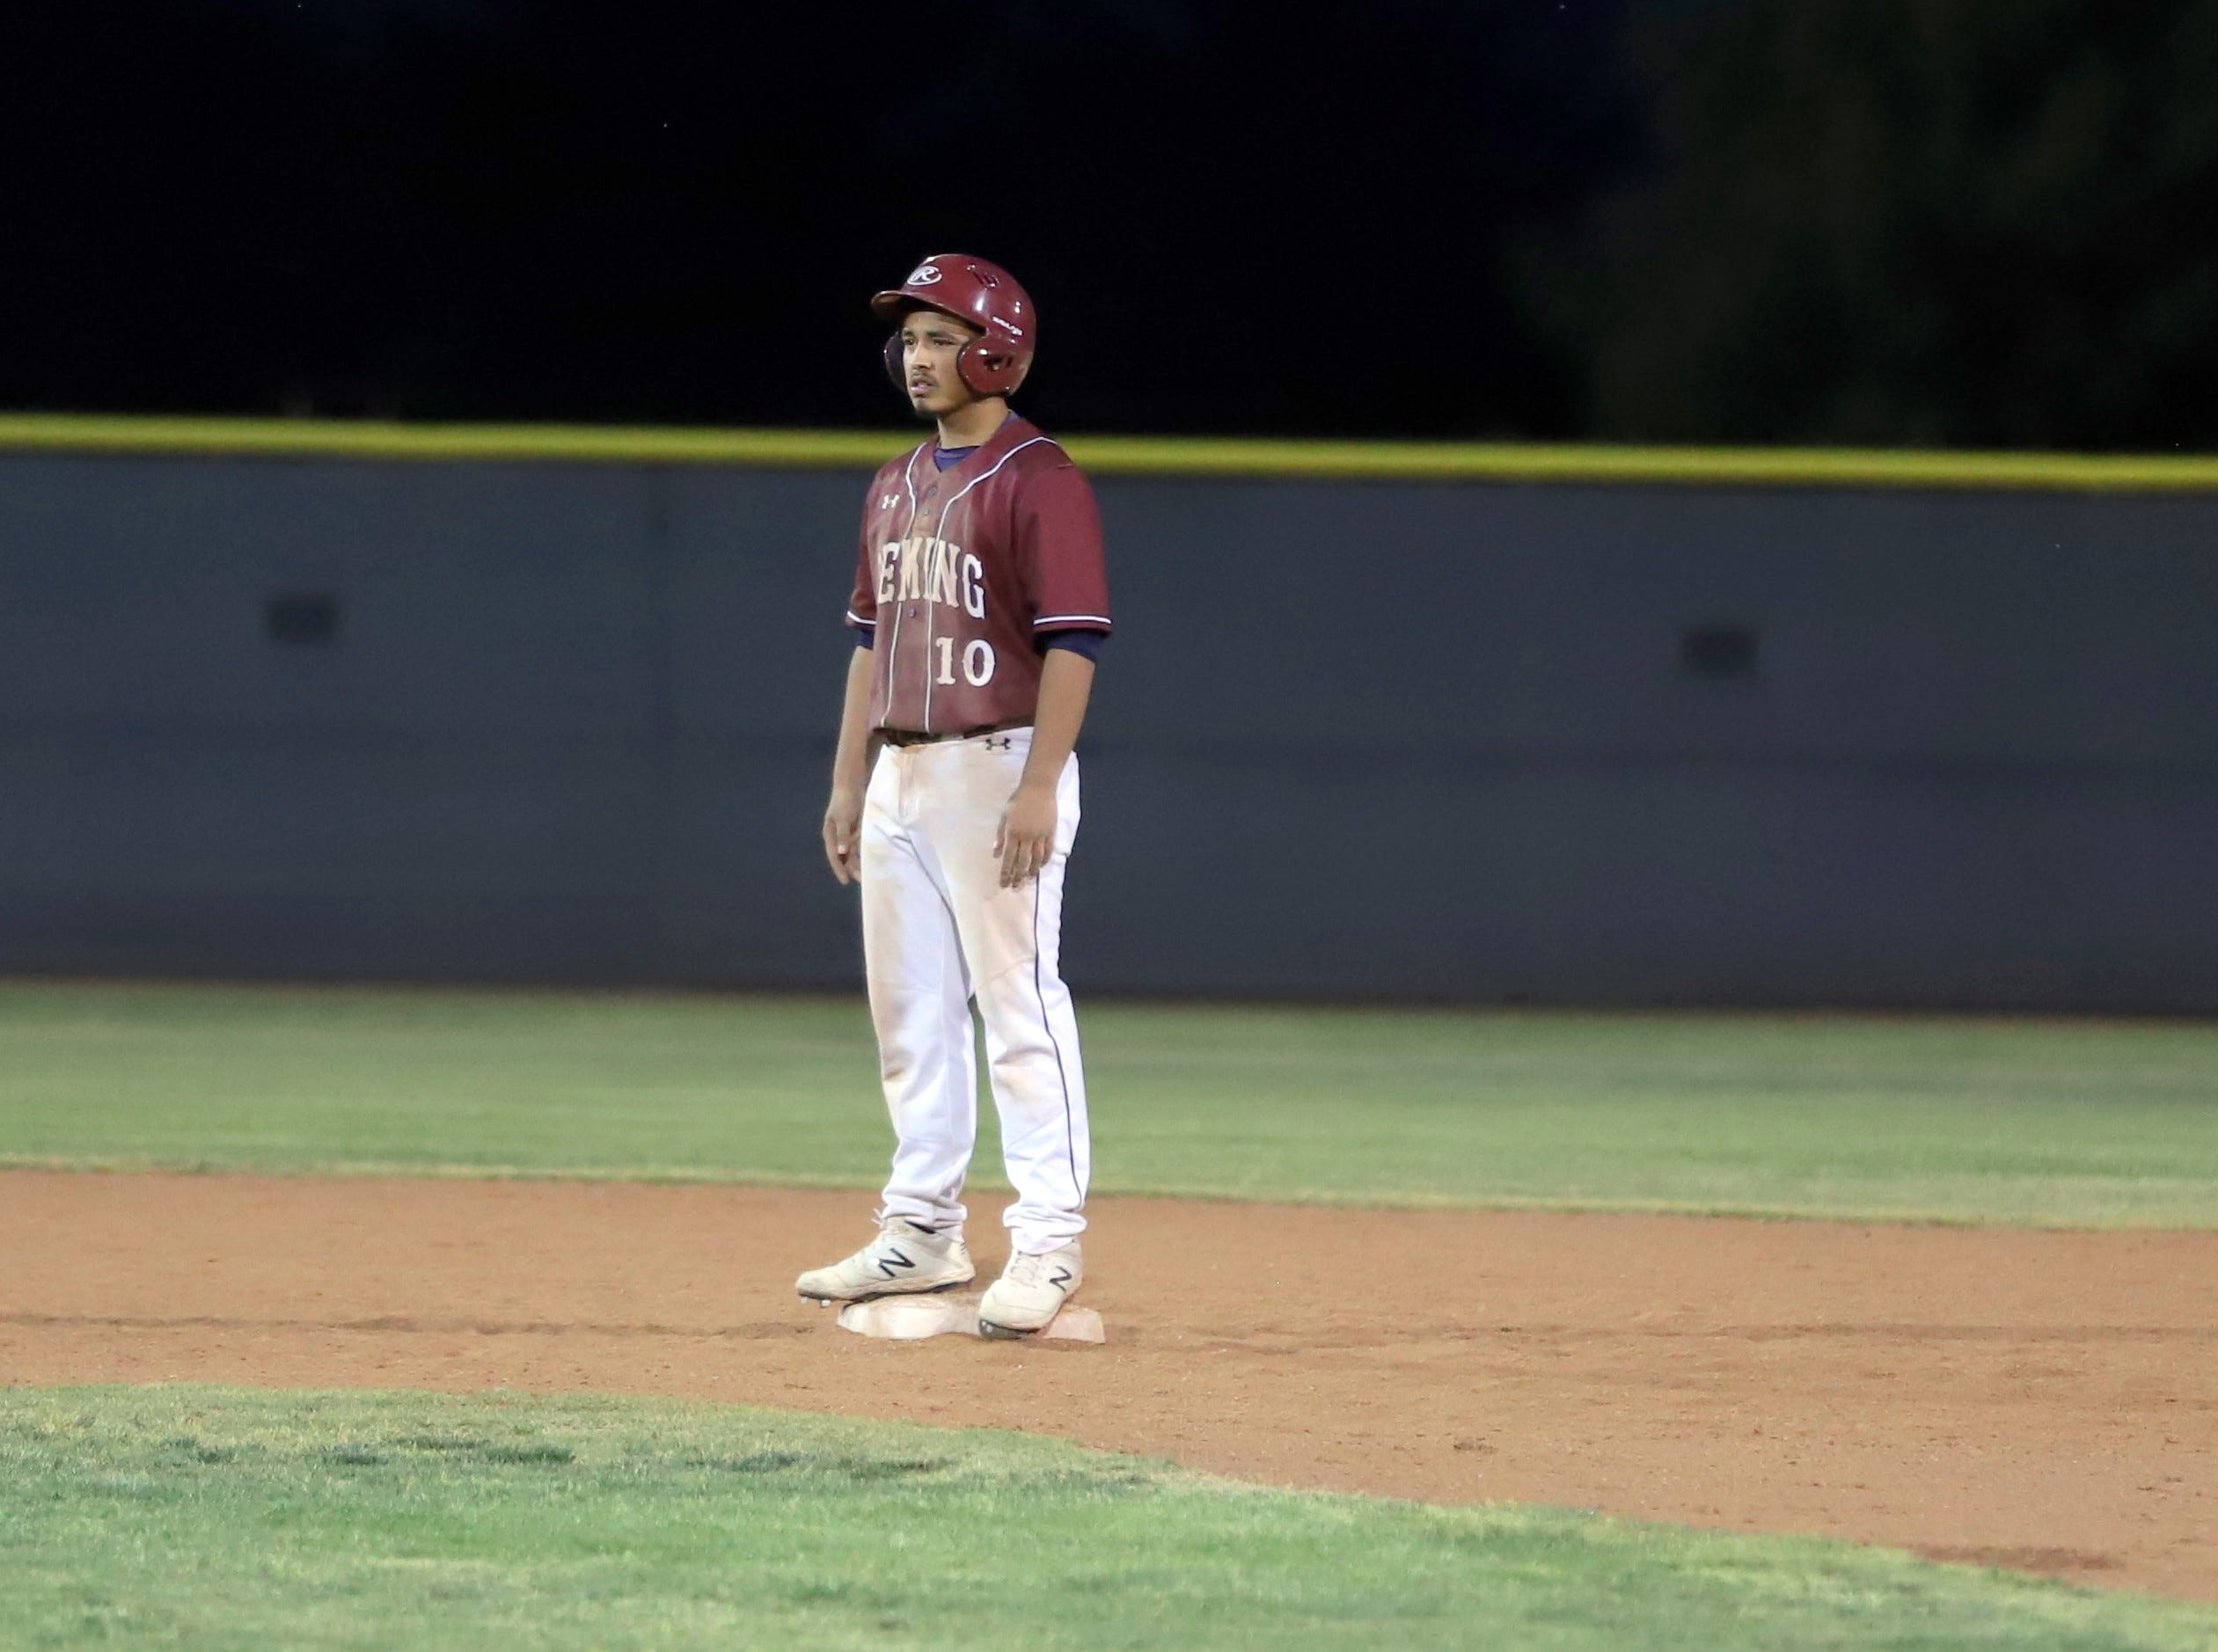 Junior Wildcat designated hitter James Palomarez stood at second base in the fourth inning and actually made it to third base.